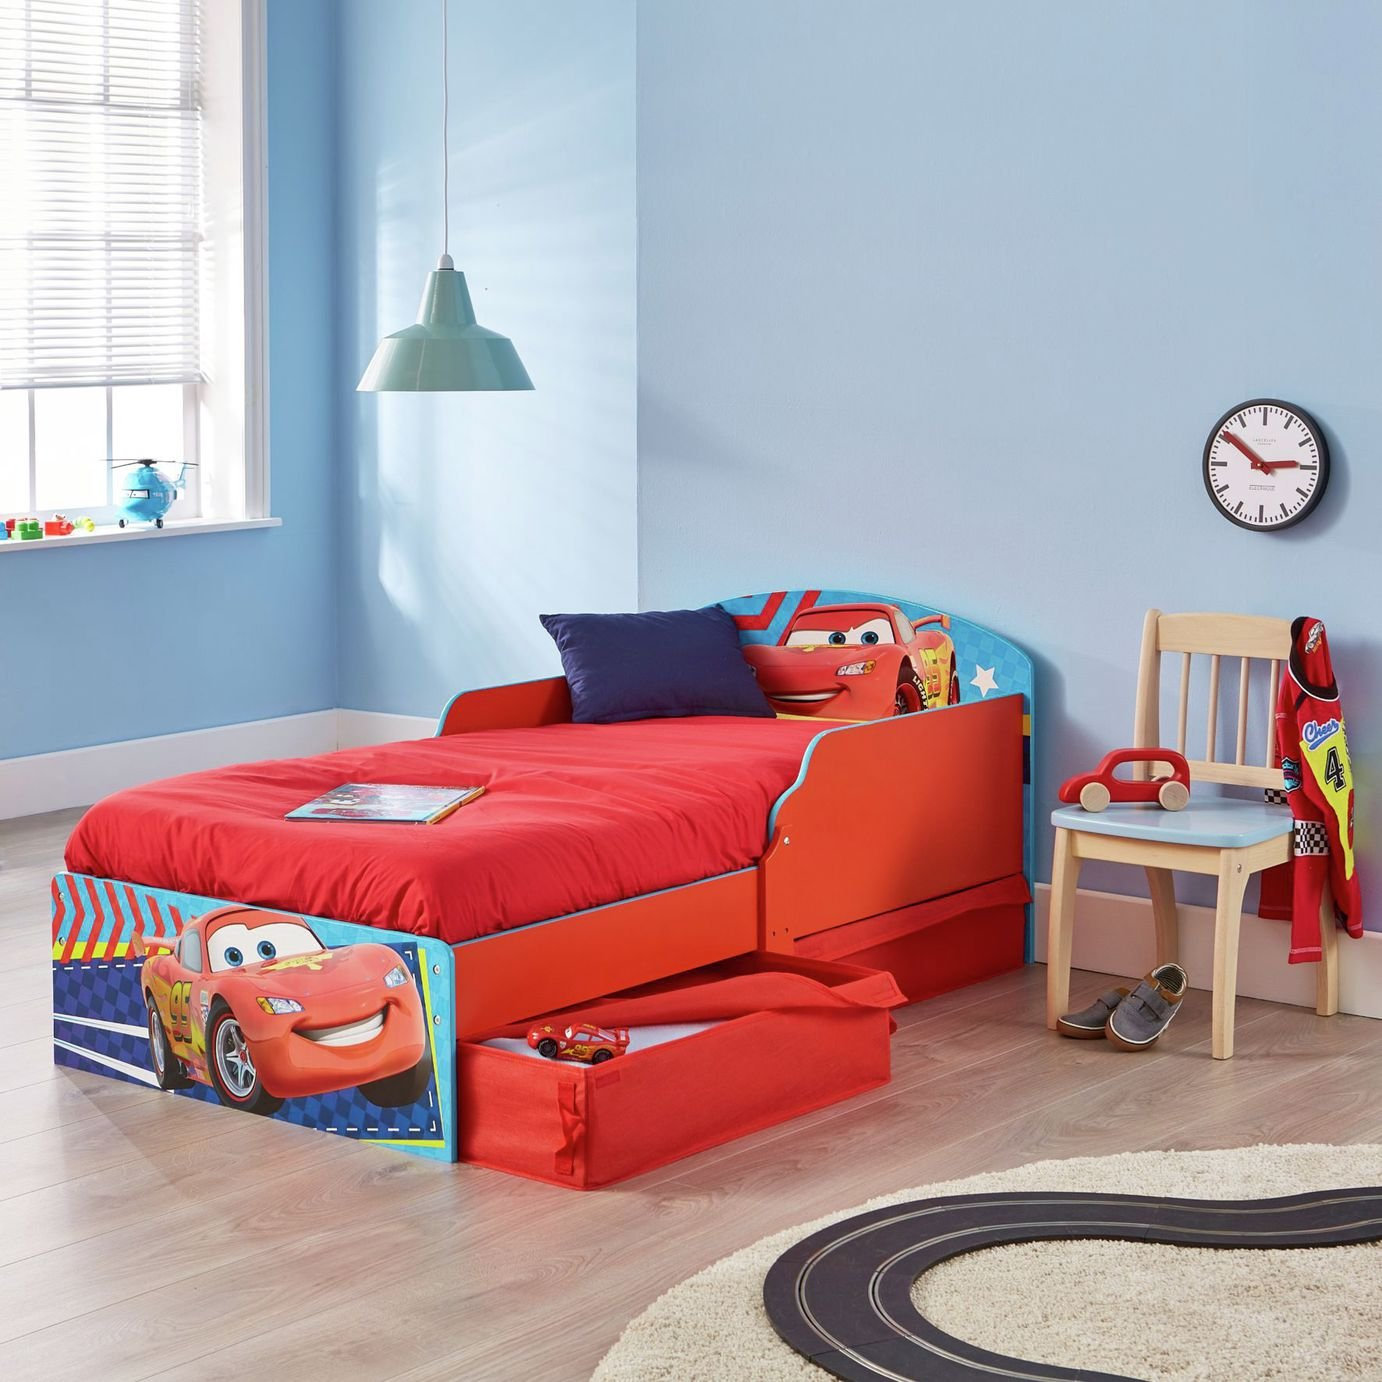 Disney Cars Toddler Bed with Drawers